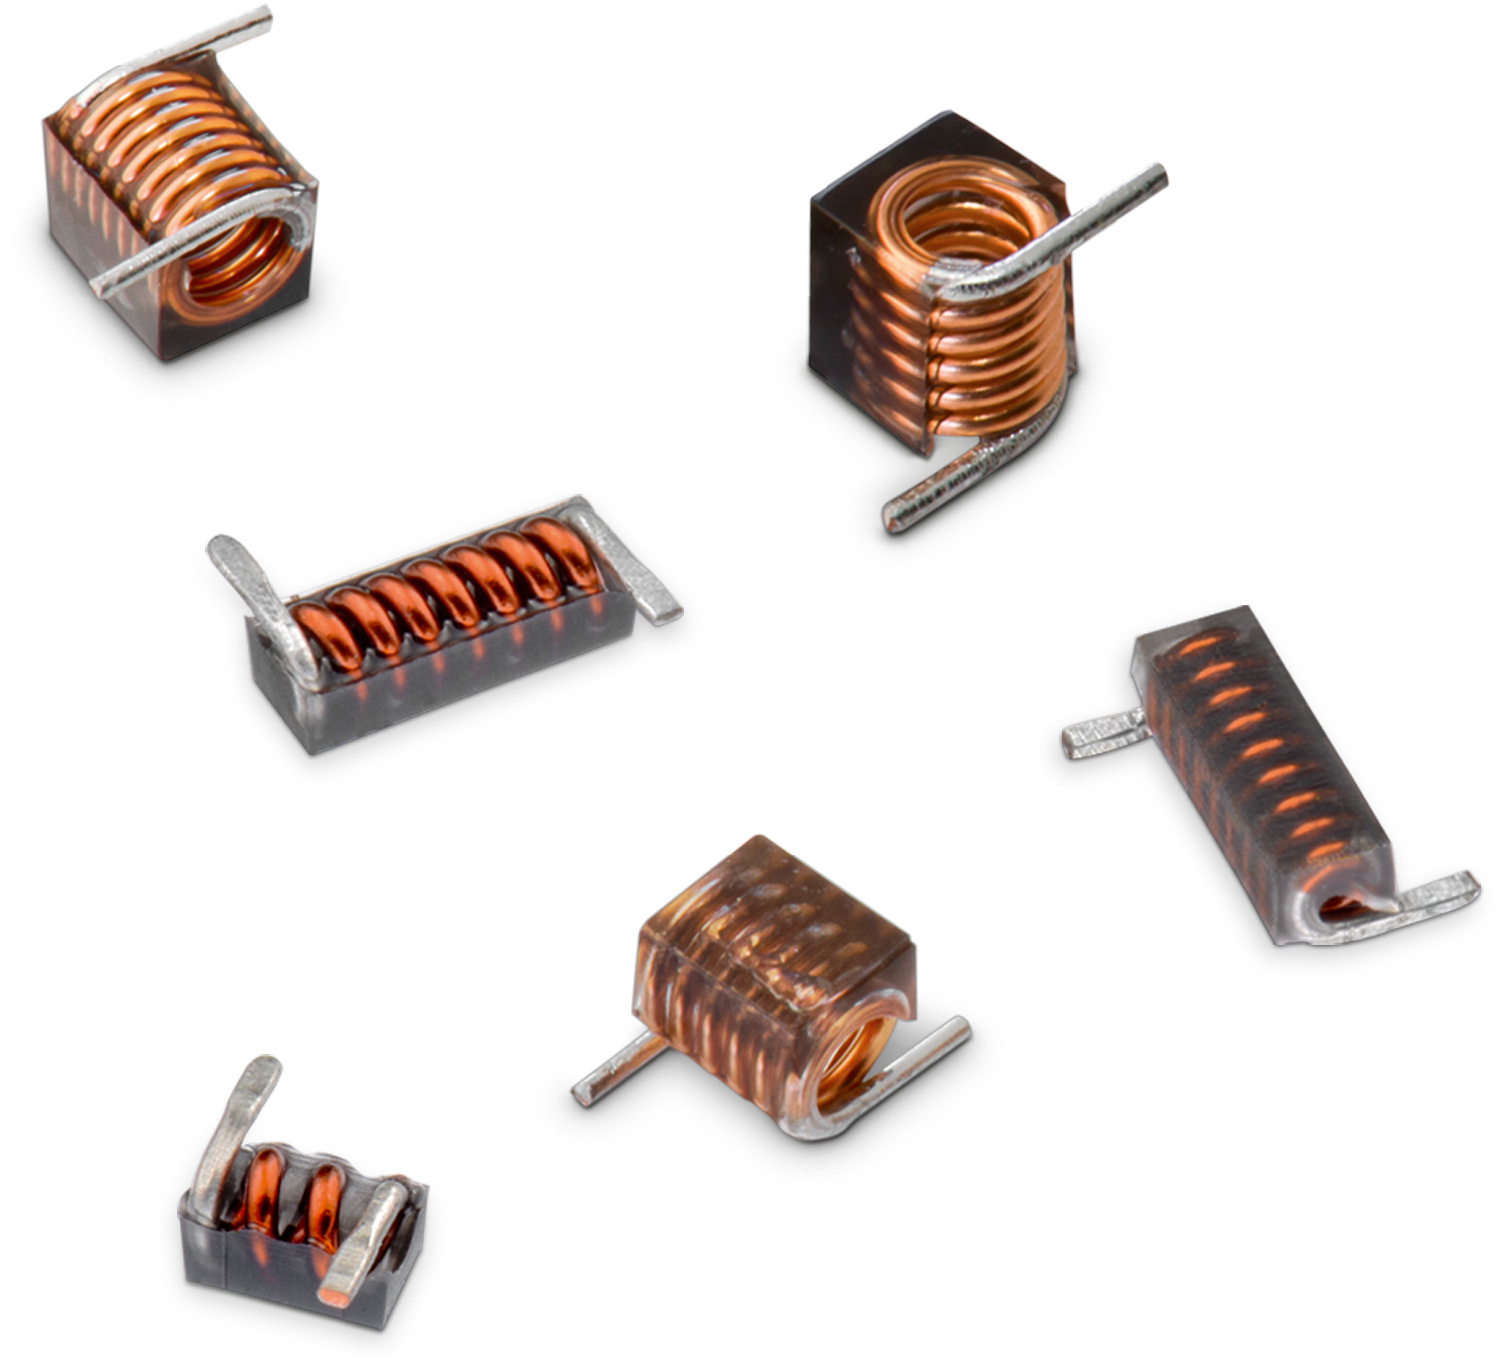 WE-CAIR Air coil | Passive Components | Würth Elektronik